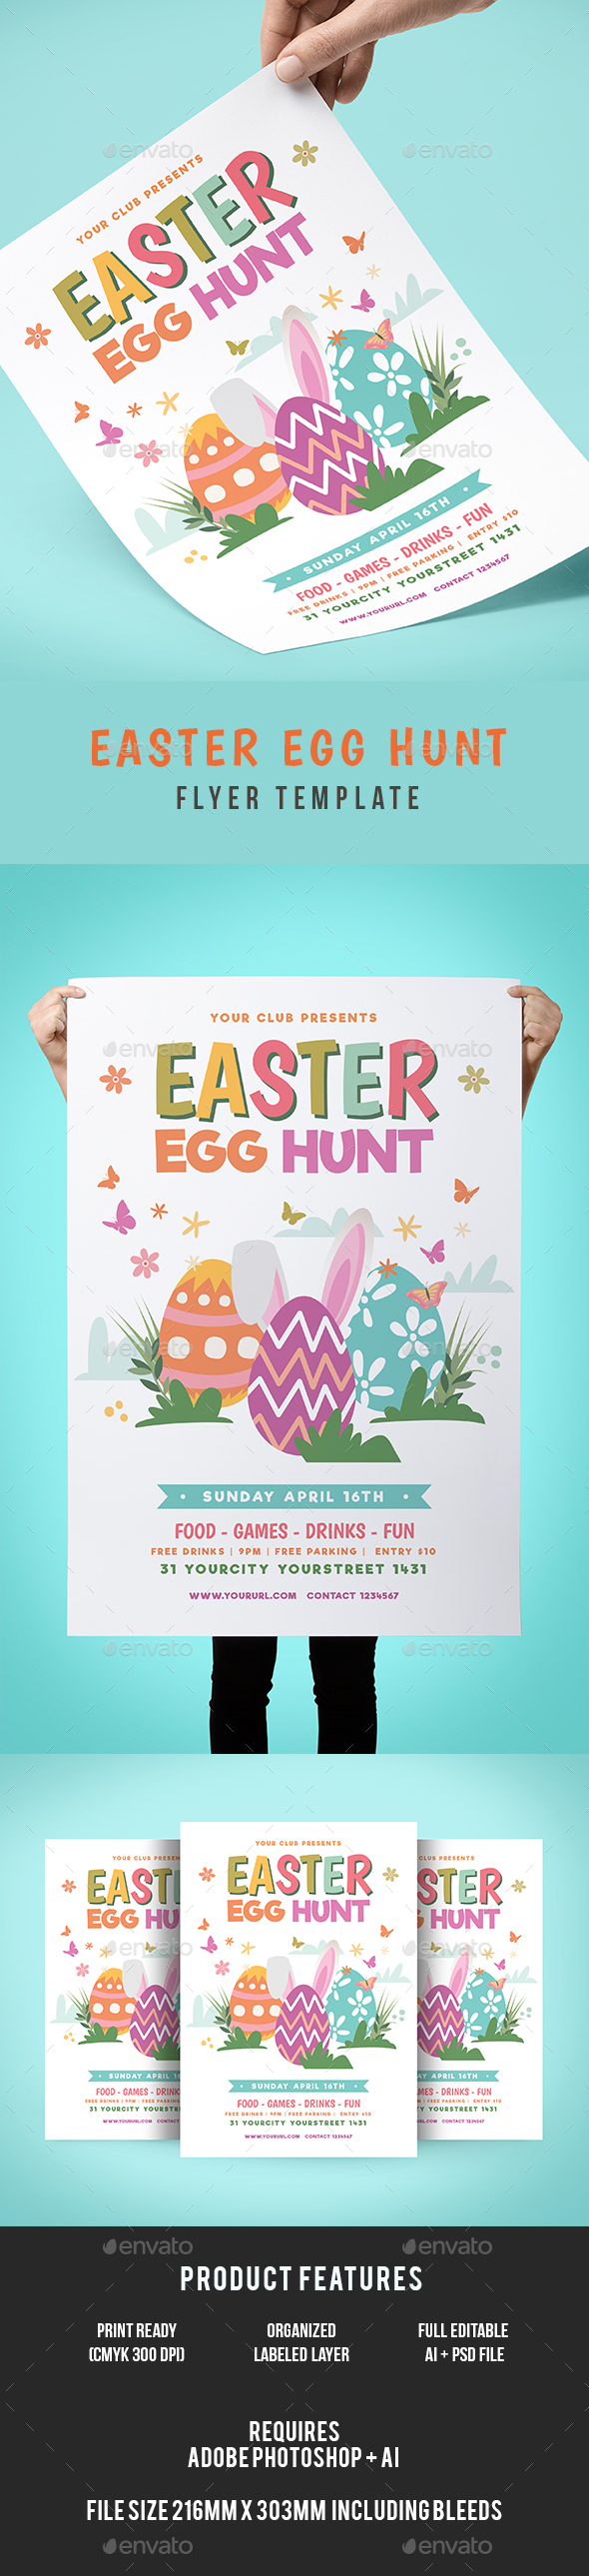 Easter Egg Hunt Flyer - Events Flyers